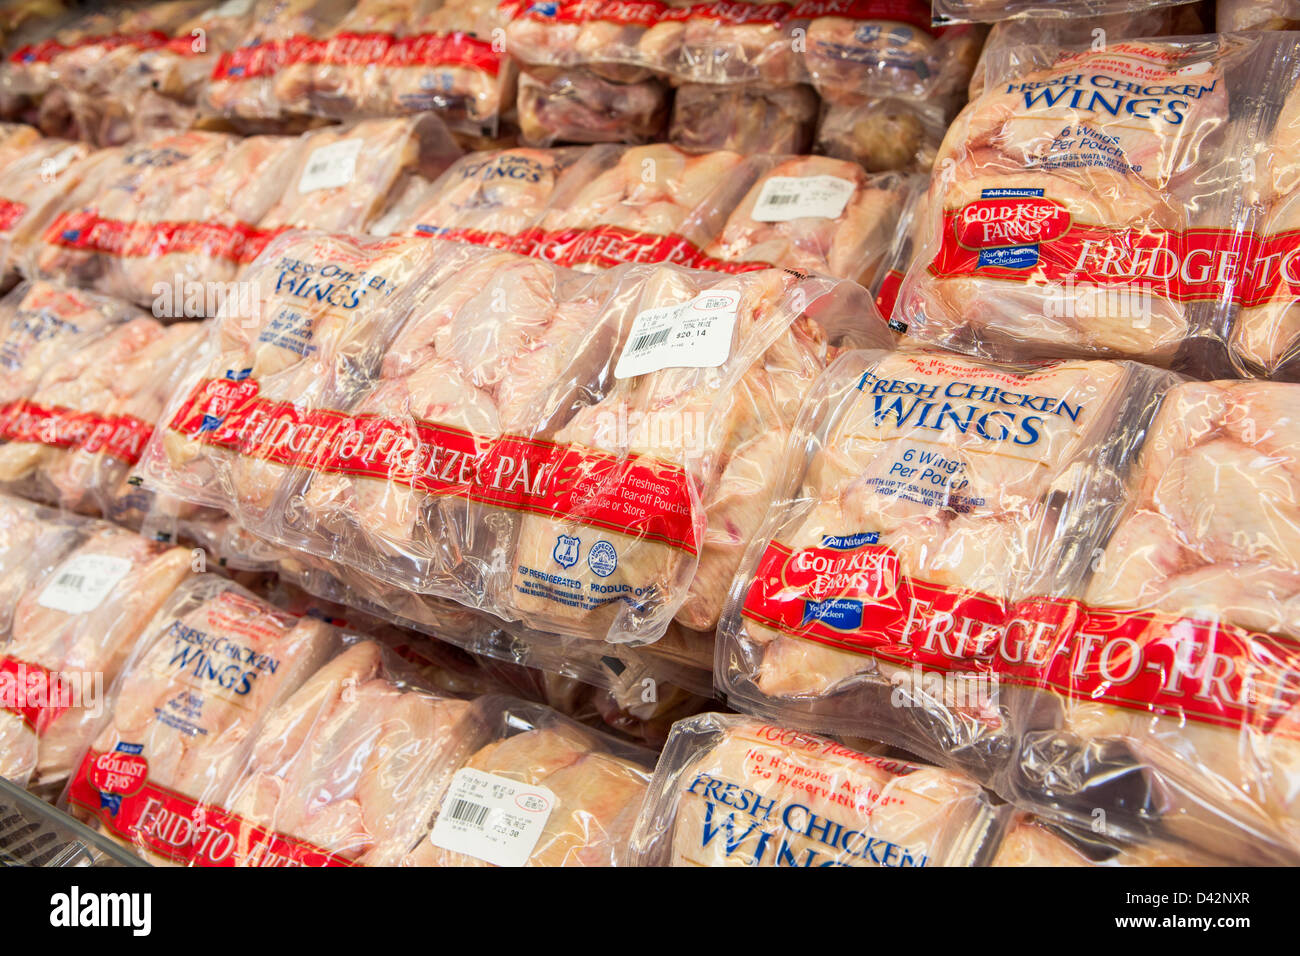 Chicken wings on display at a costco wholesale warehouse club stock chicken wings on display at a costco wholesale warehouse club stock photo 54150847 alamy thecheapjerseys Images